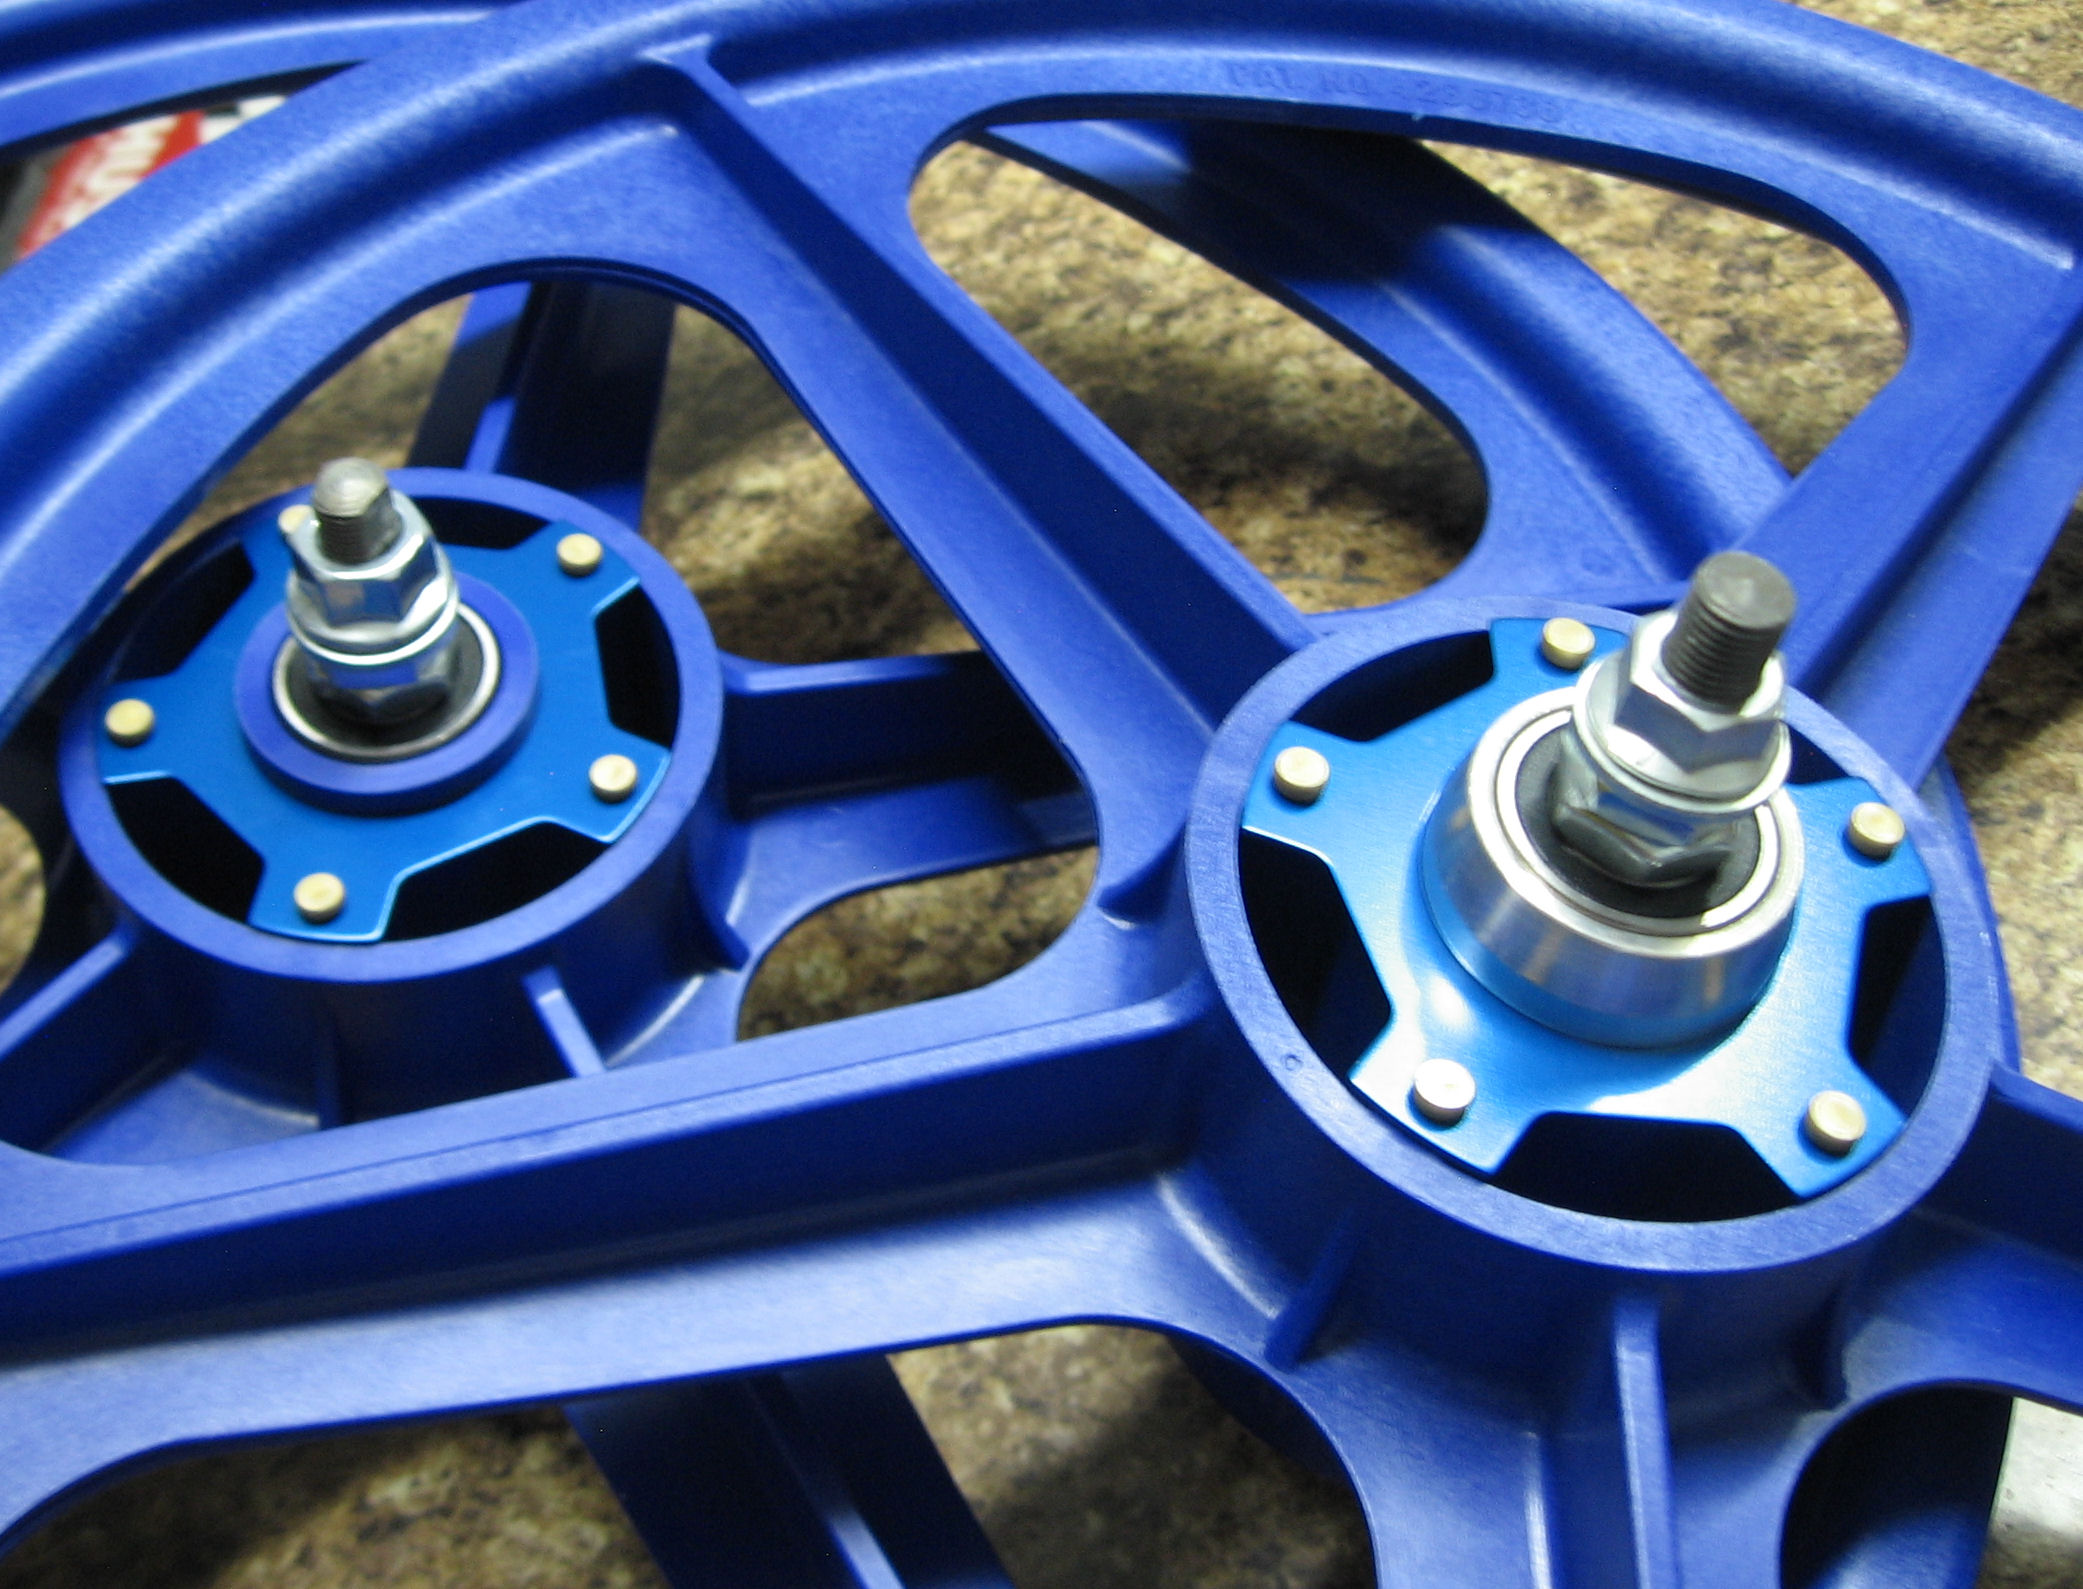 Gen 1.1 Kool Caps in Blue for zytel nylon Tuff Wheel II's.